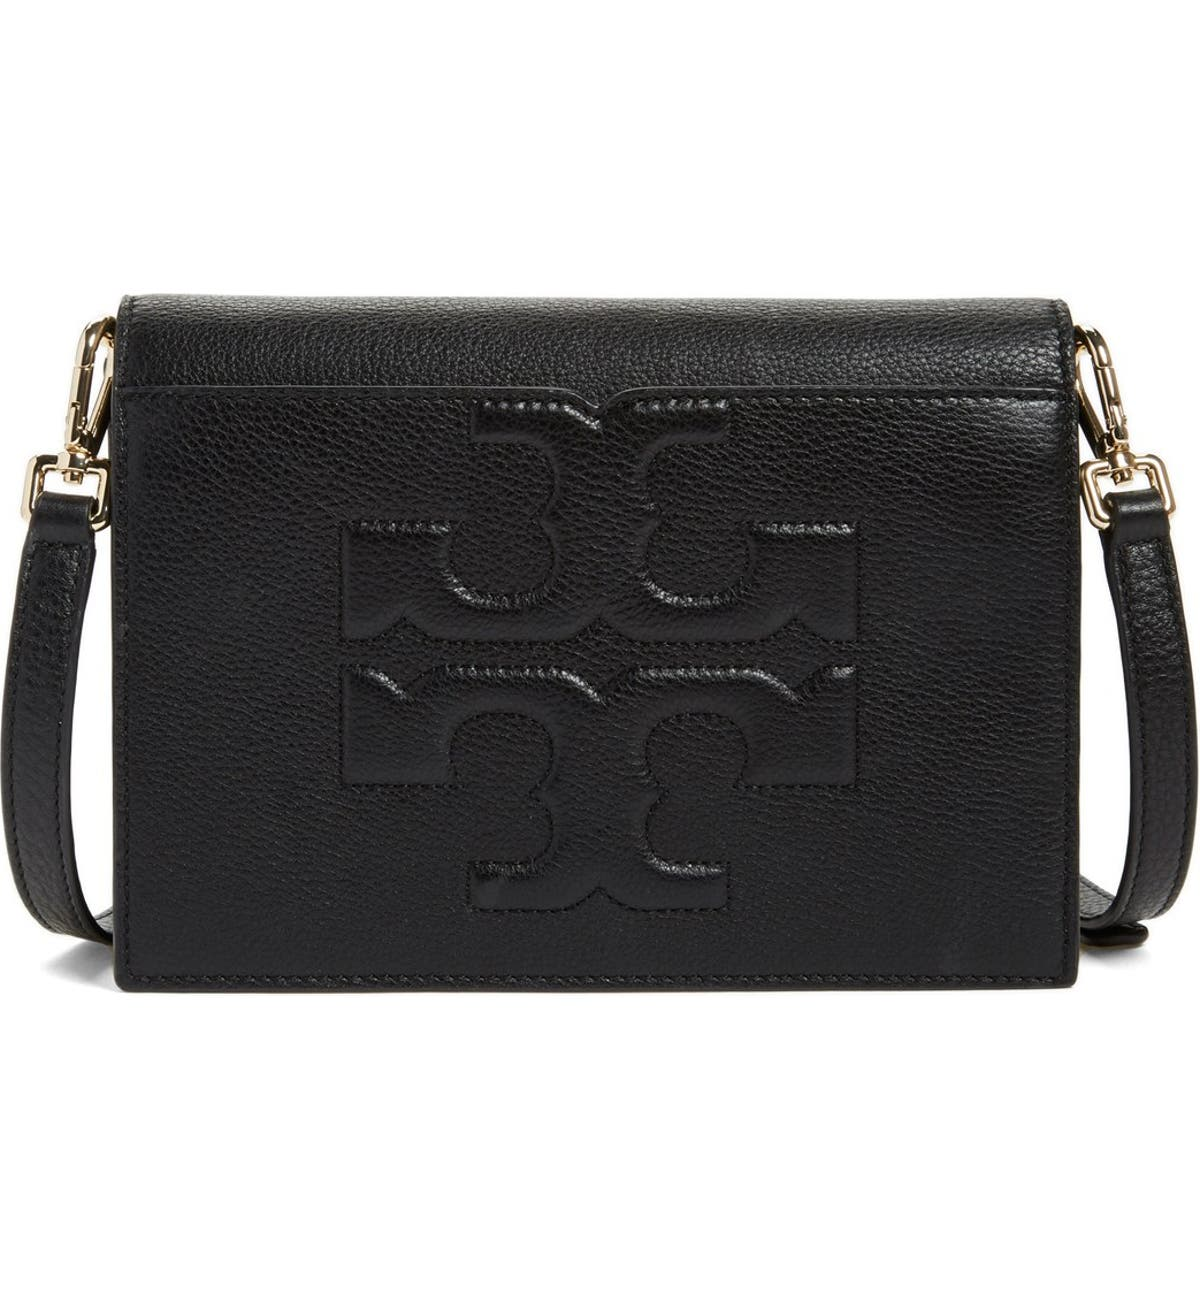 d866f107c Tory Burch 'Bombe T' Leather Convertible Crossbody Bag | Nordstrom